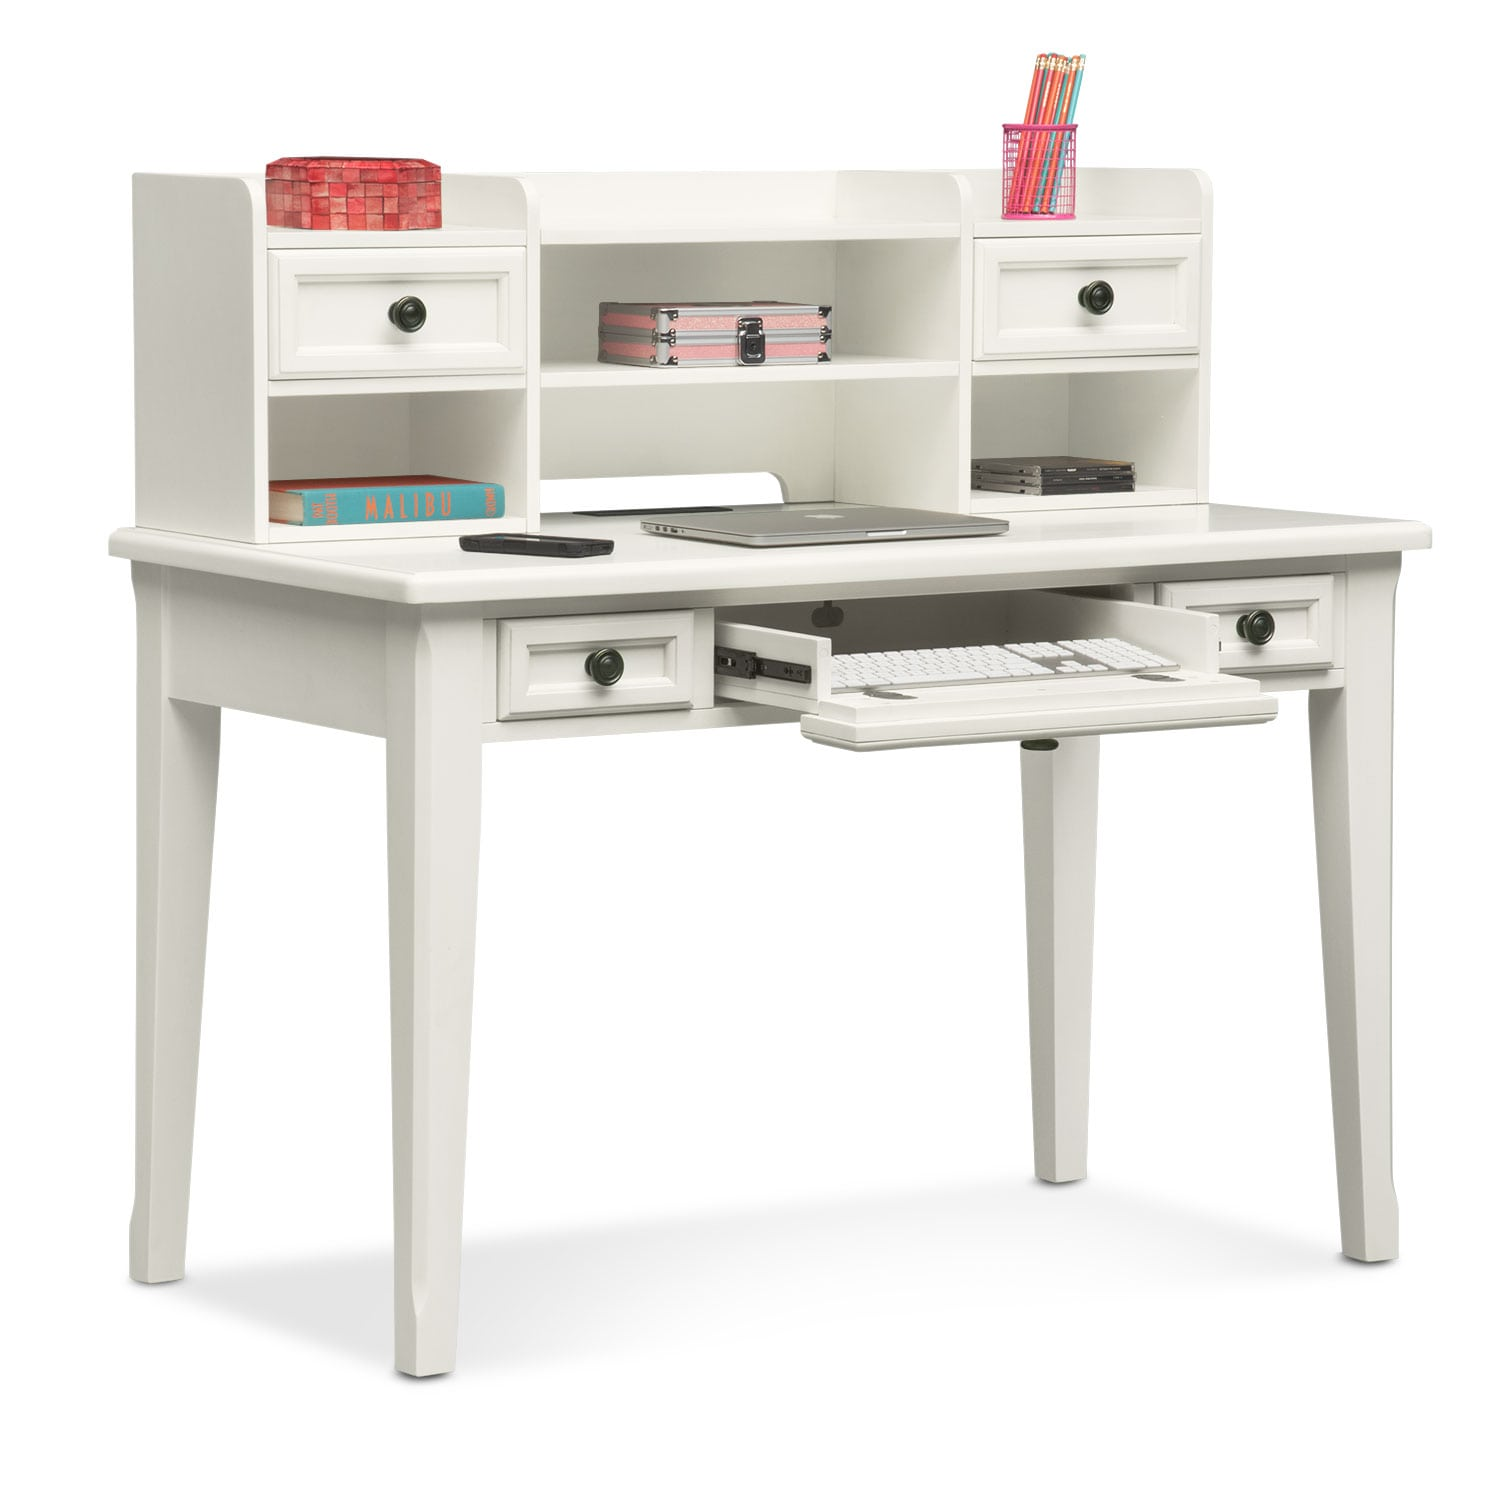 Bedroom Furniture With Desk: Hanover Youth Desk And Hutch - White